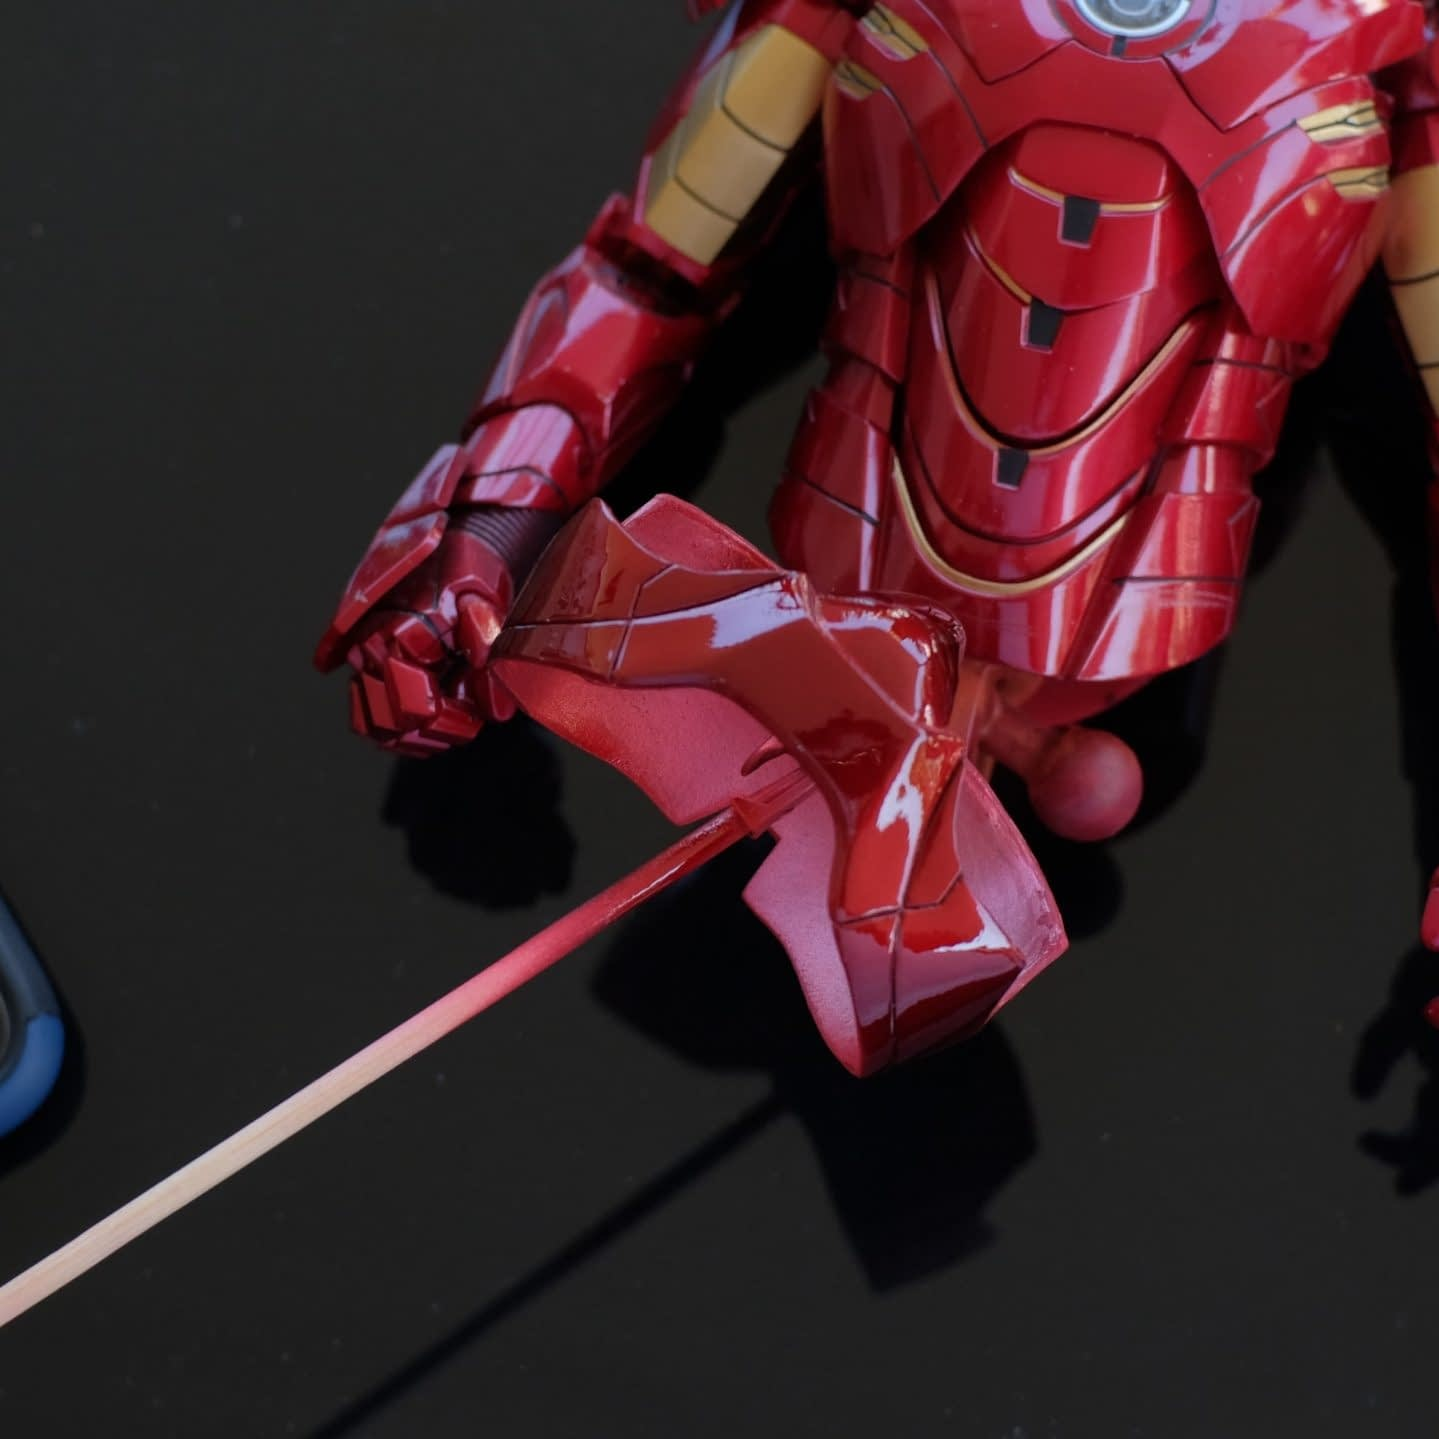 How to fix HT's Iron Man pink panty issue 1